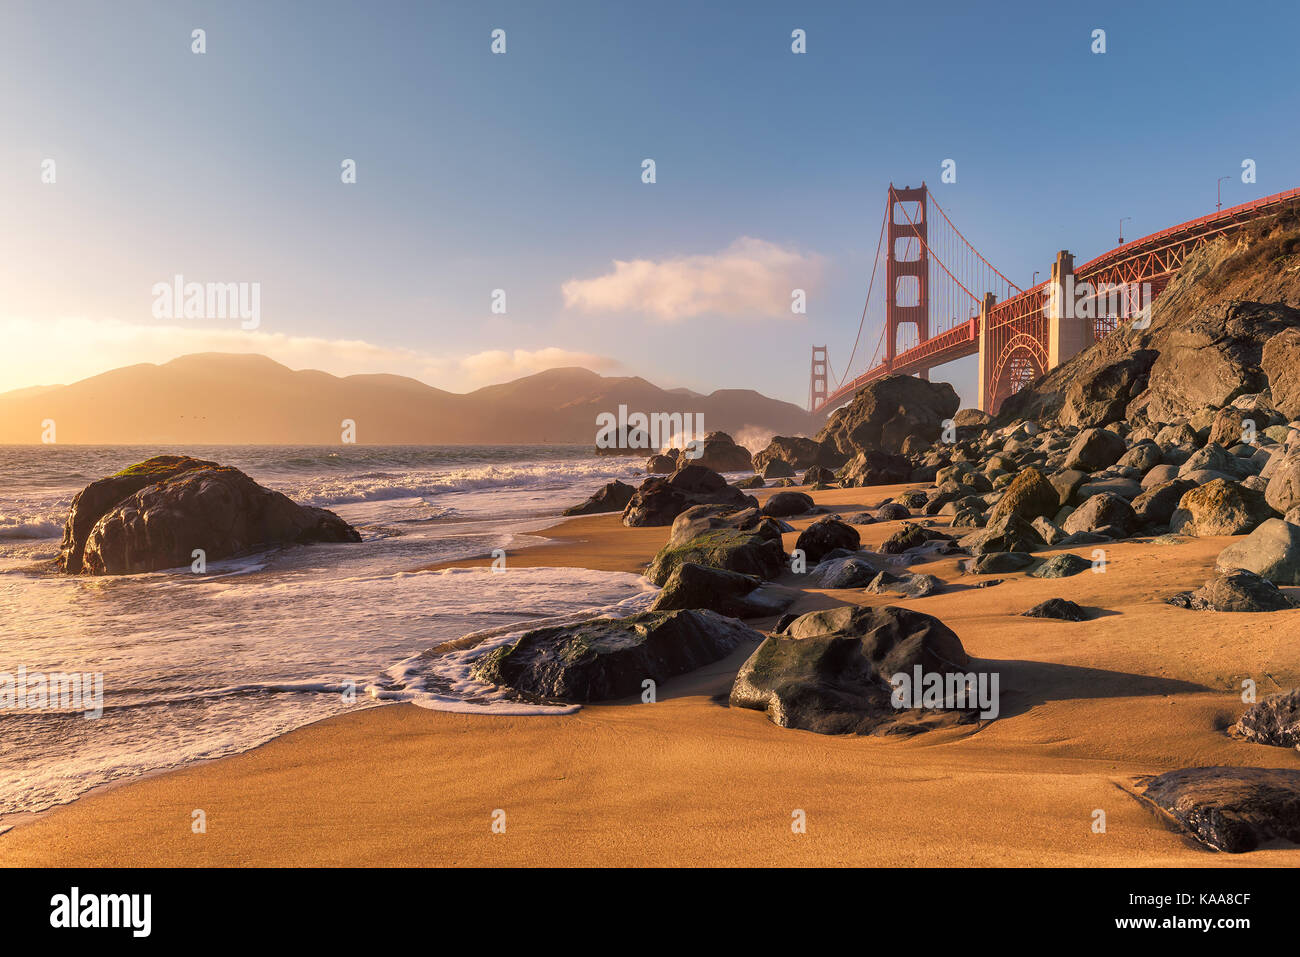 Golden Gate Bridge vom Strand in San Francisco bei Sonnenuntergang. Stockbild